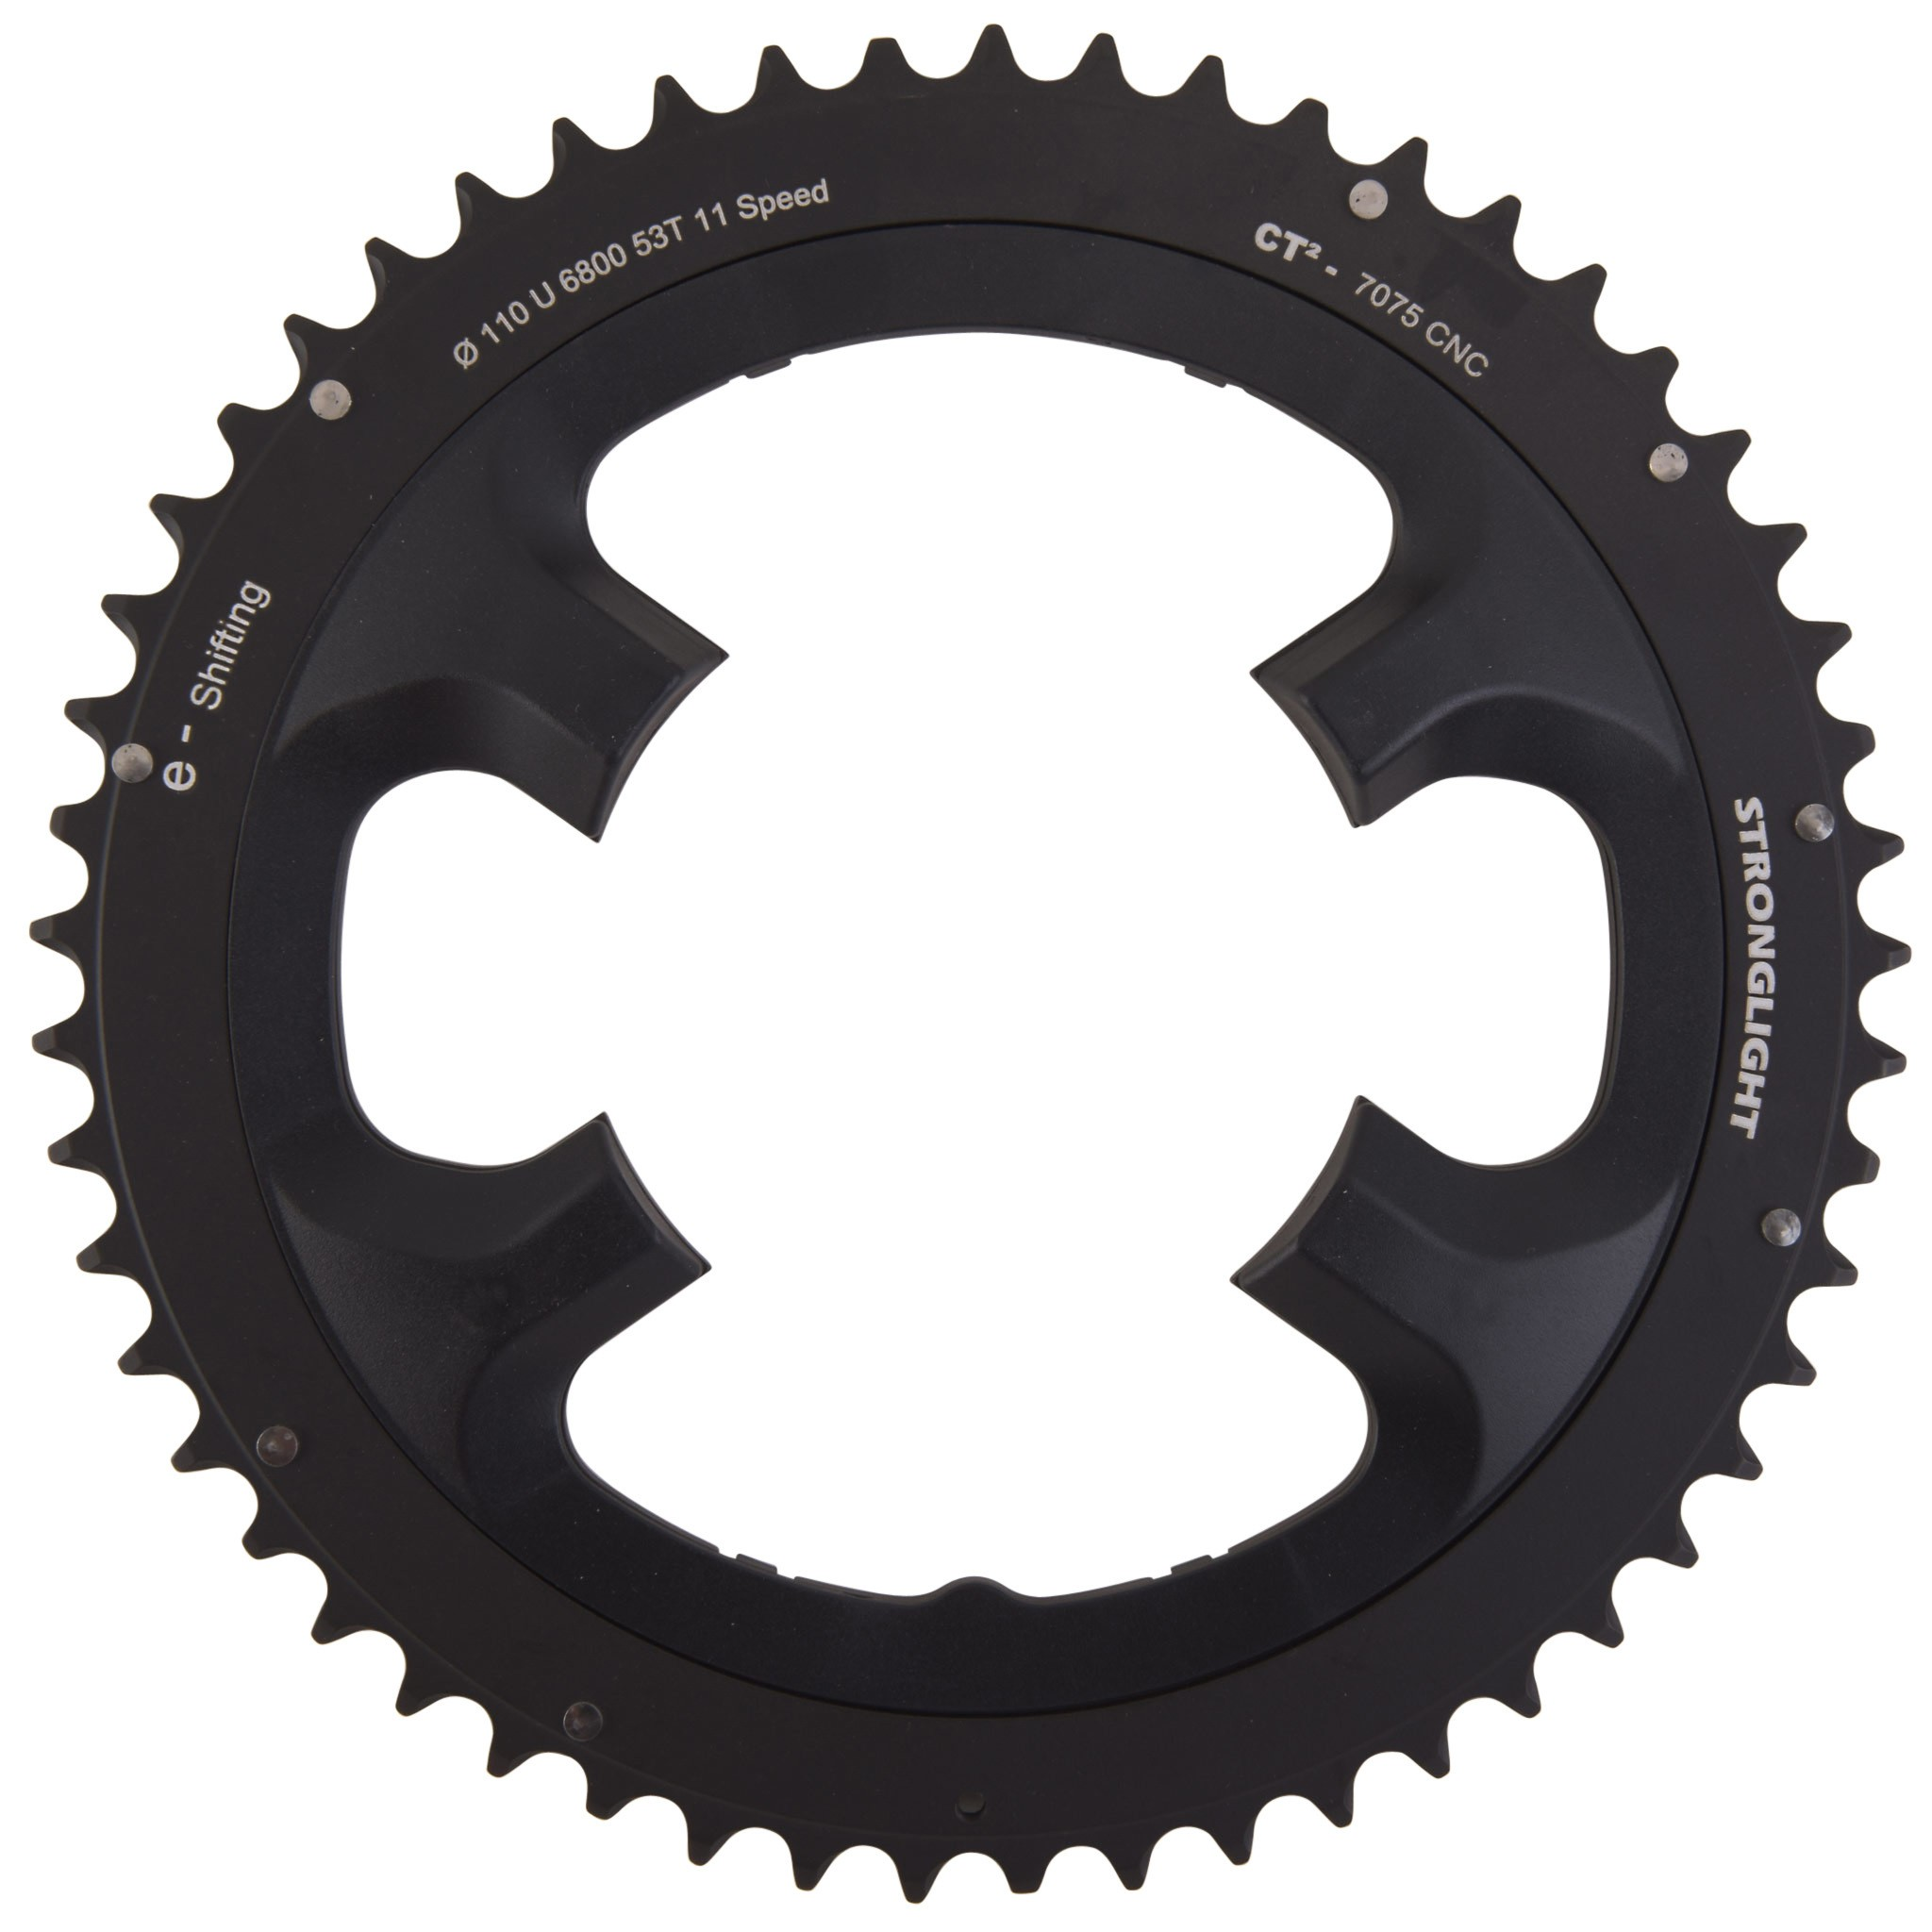 f4be34d7ab2 Stronglight E-Shifting CT2 Shimano Ultegra FC-6800 110 mm Outside Chainring  - Black